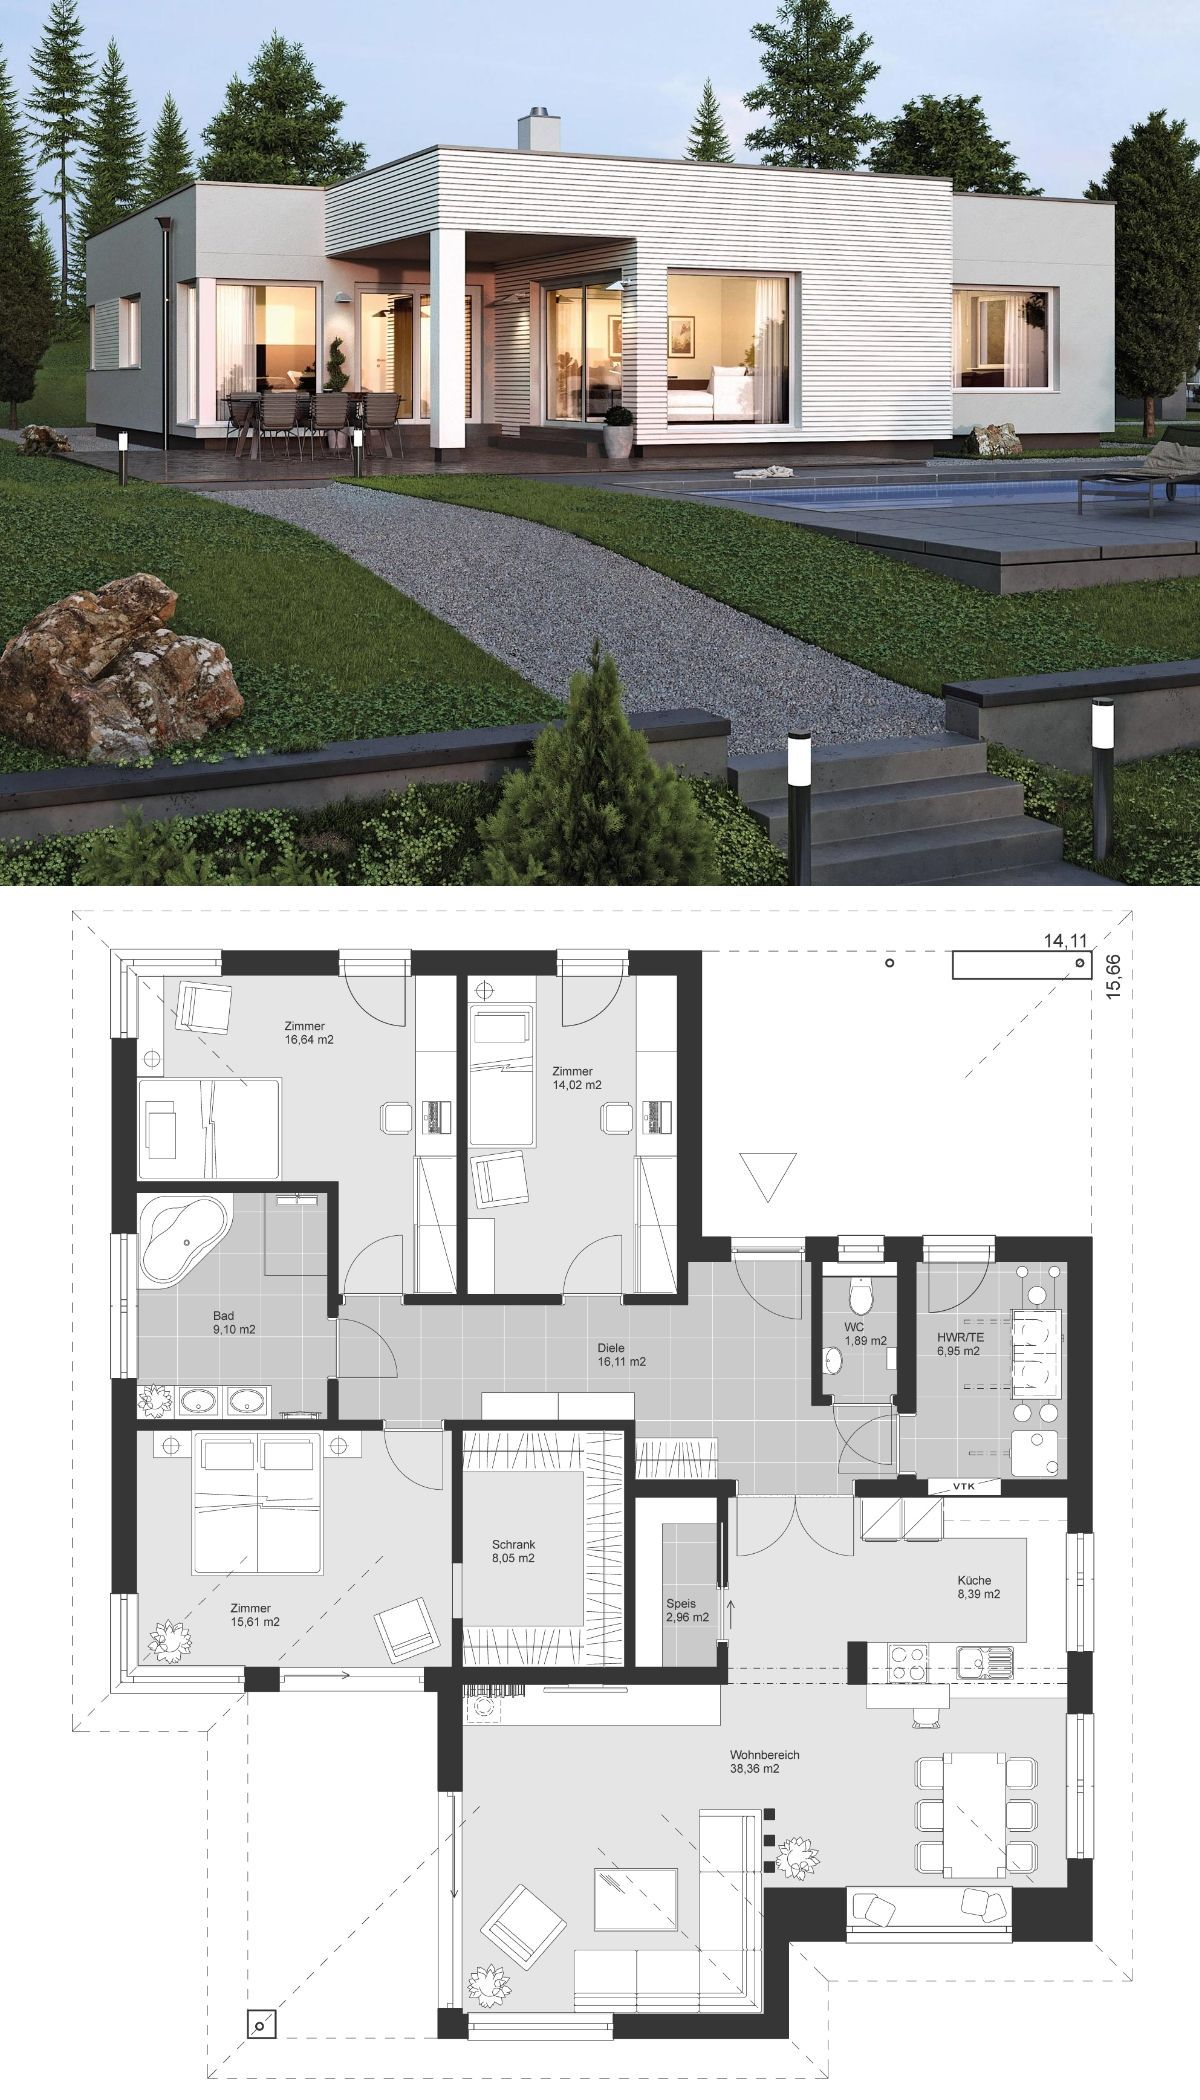 Bungalow modern contemporary european style architecture design house plan  celk   dream also minimalist houses have big open locations along with rh pinterest